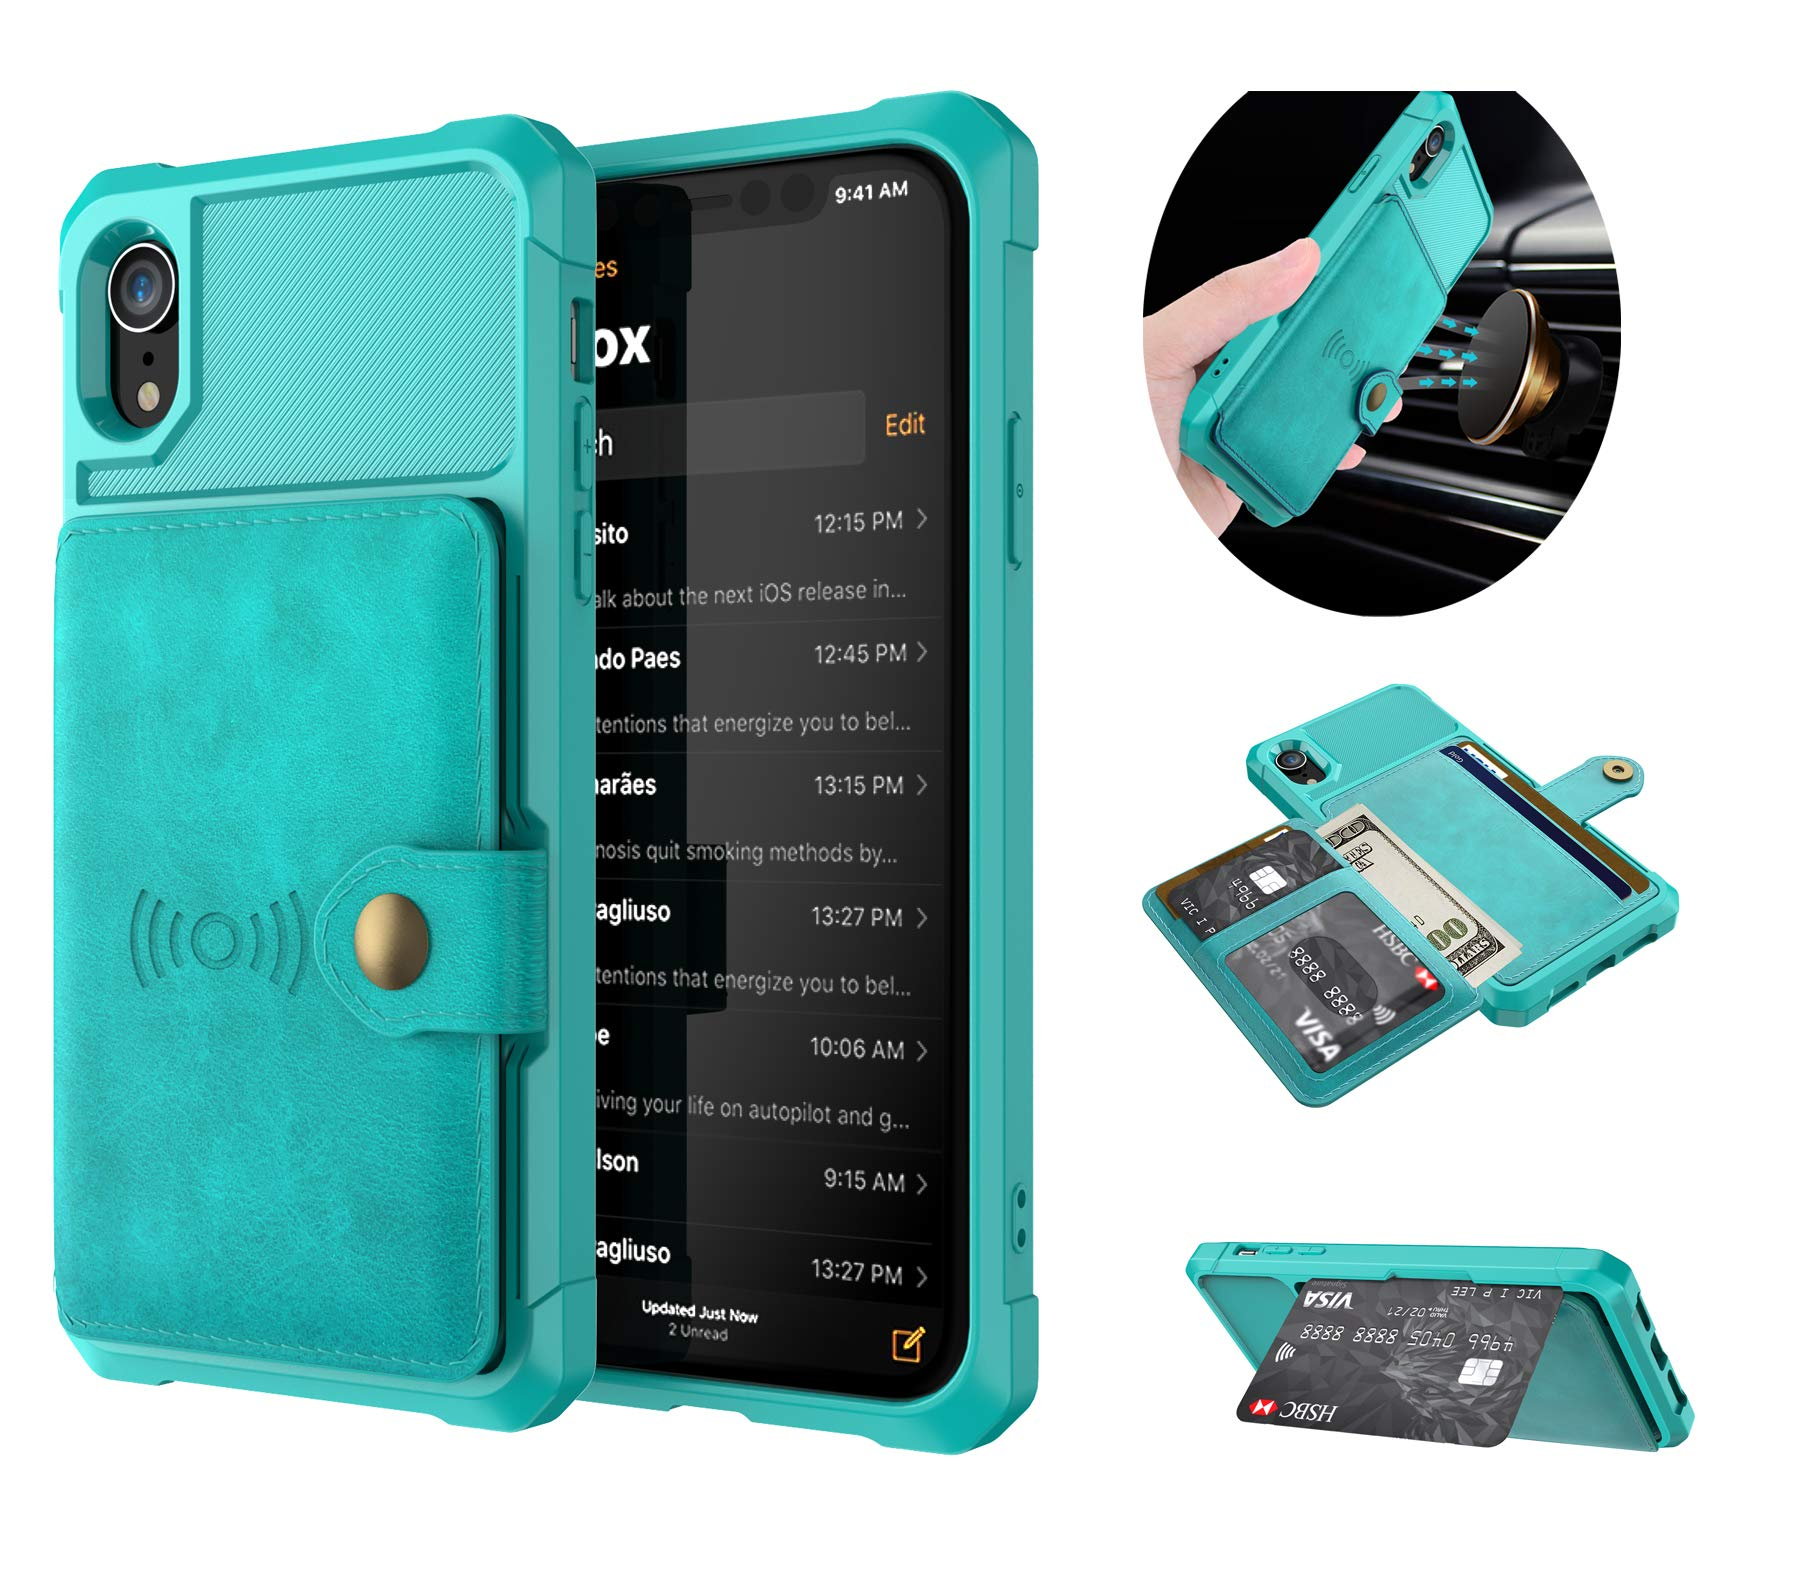 Tznzxm iPhone Xr Wireless Charging Wallet Case with Credit Card Holder Kickstand Rubber Buttons [Work with Magnetic Car Mount] Durable Flip Shockproof Protective Cover for Apple iPhone Xr Mint Blue by Tznzxm